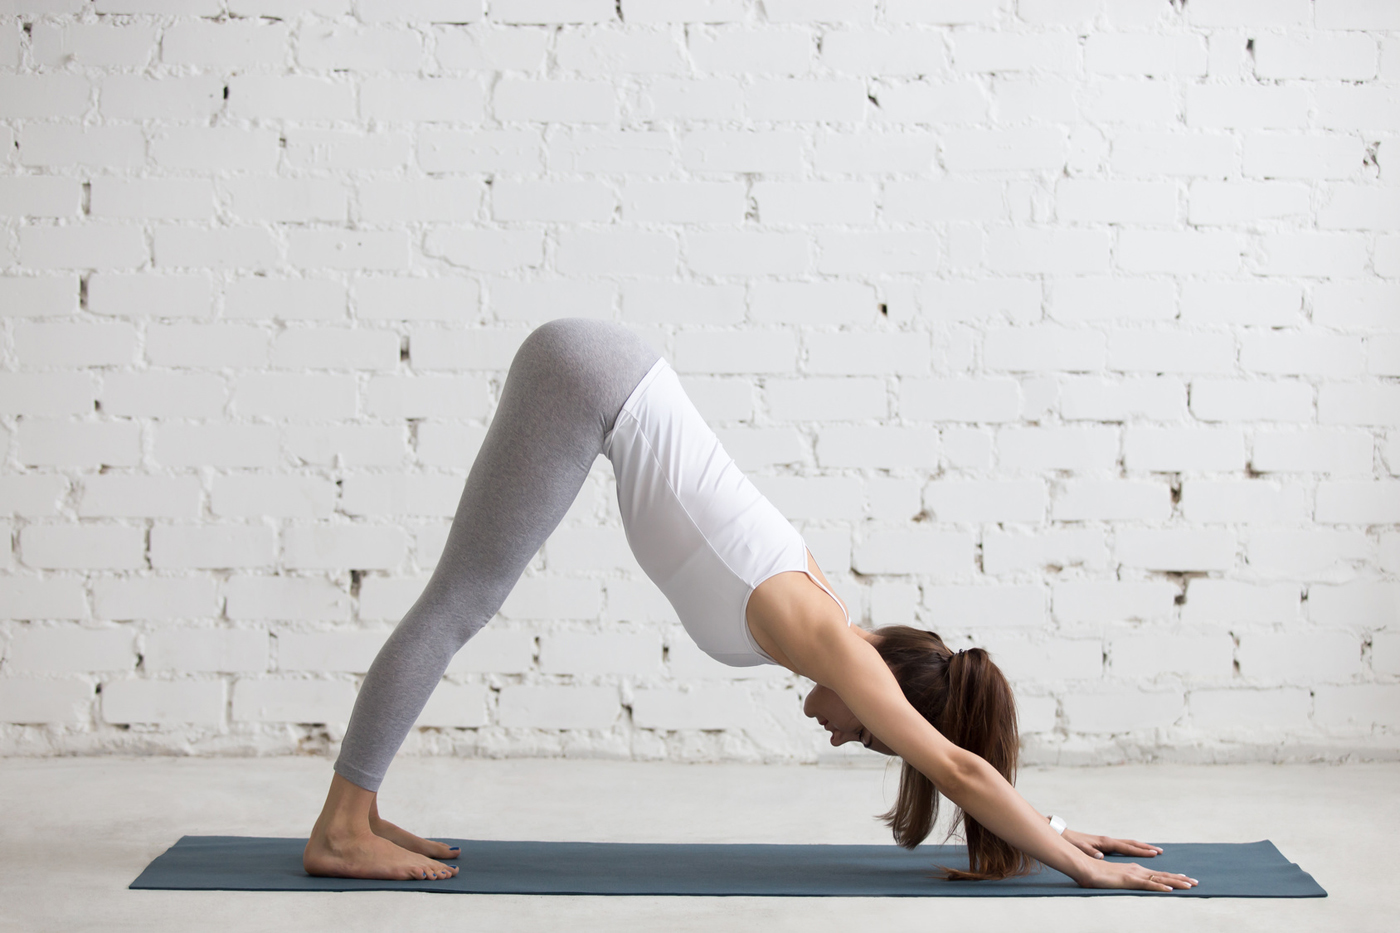 Adho Mukha Svanasana Or Downward-Facing Pose